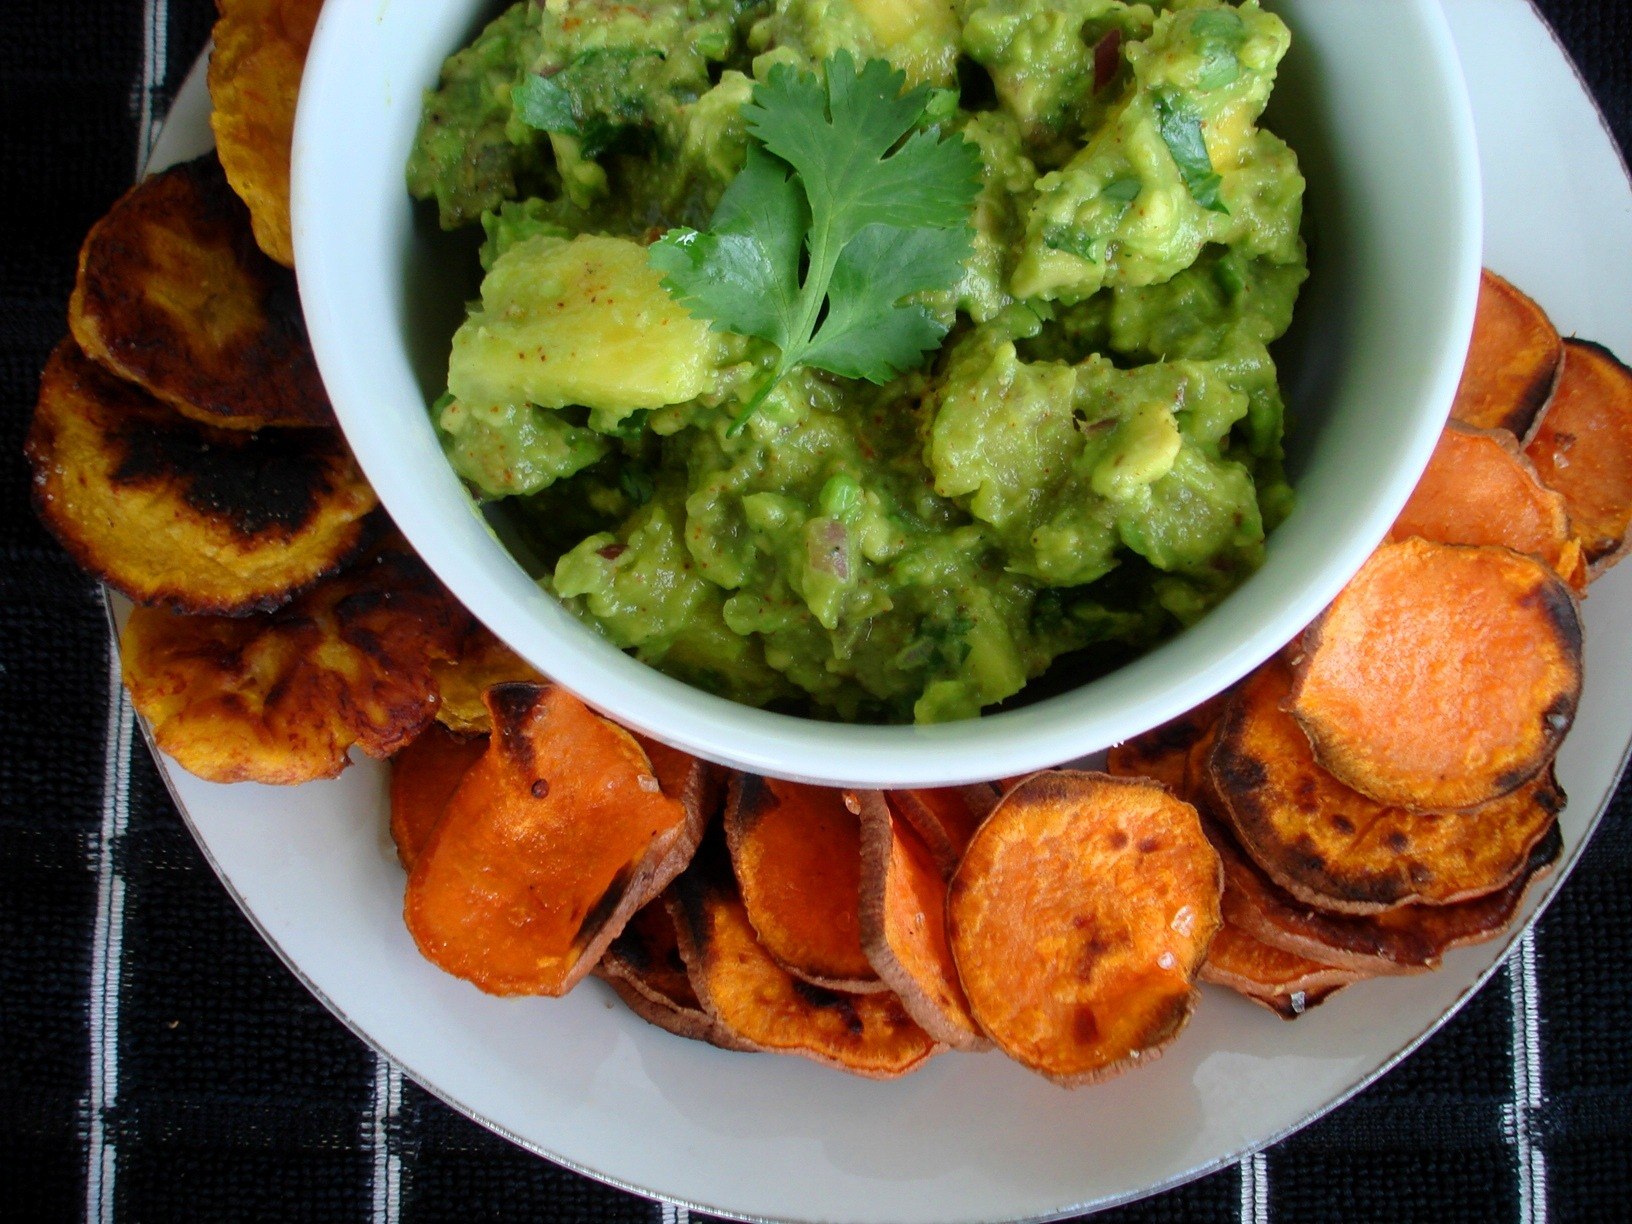 Chunky Pineapple Guacamole with Grilled Sweet Potato Chips